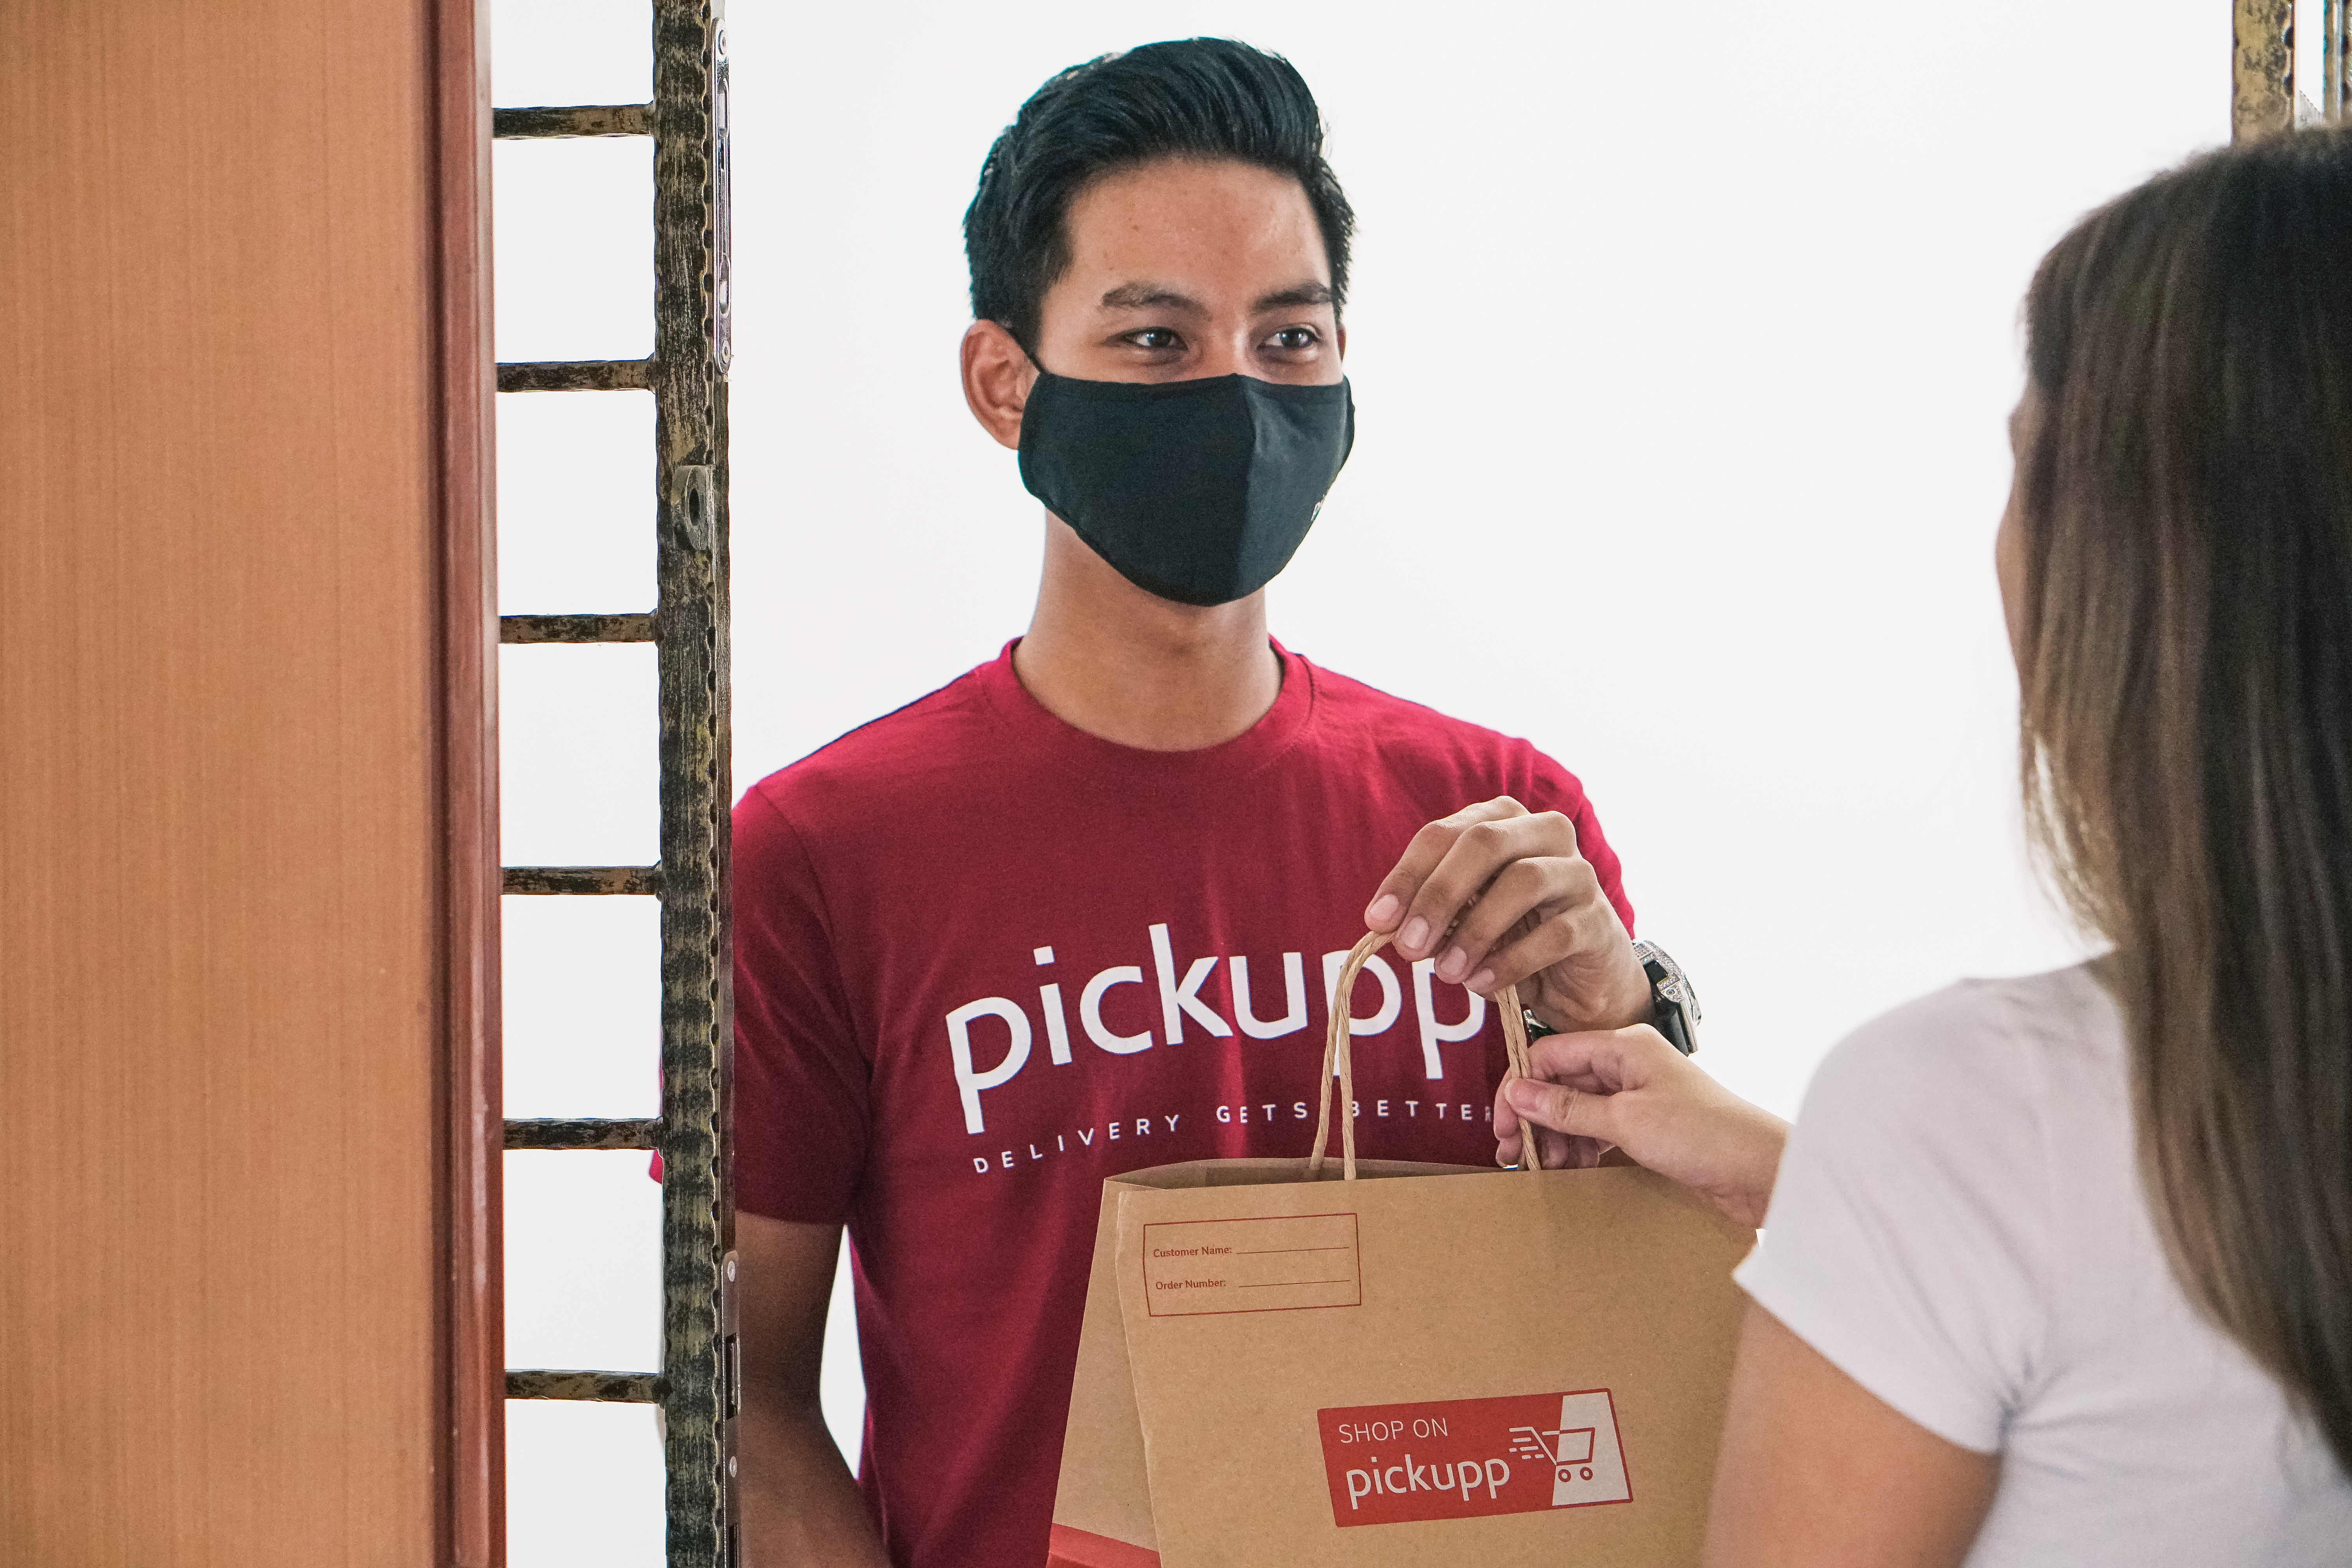 Pickupp secures US20M in its Series A and A funding adds Temasek-backed Reefknot as investor